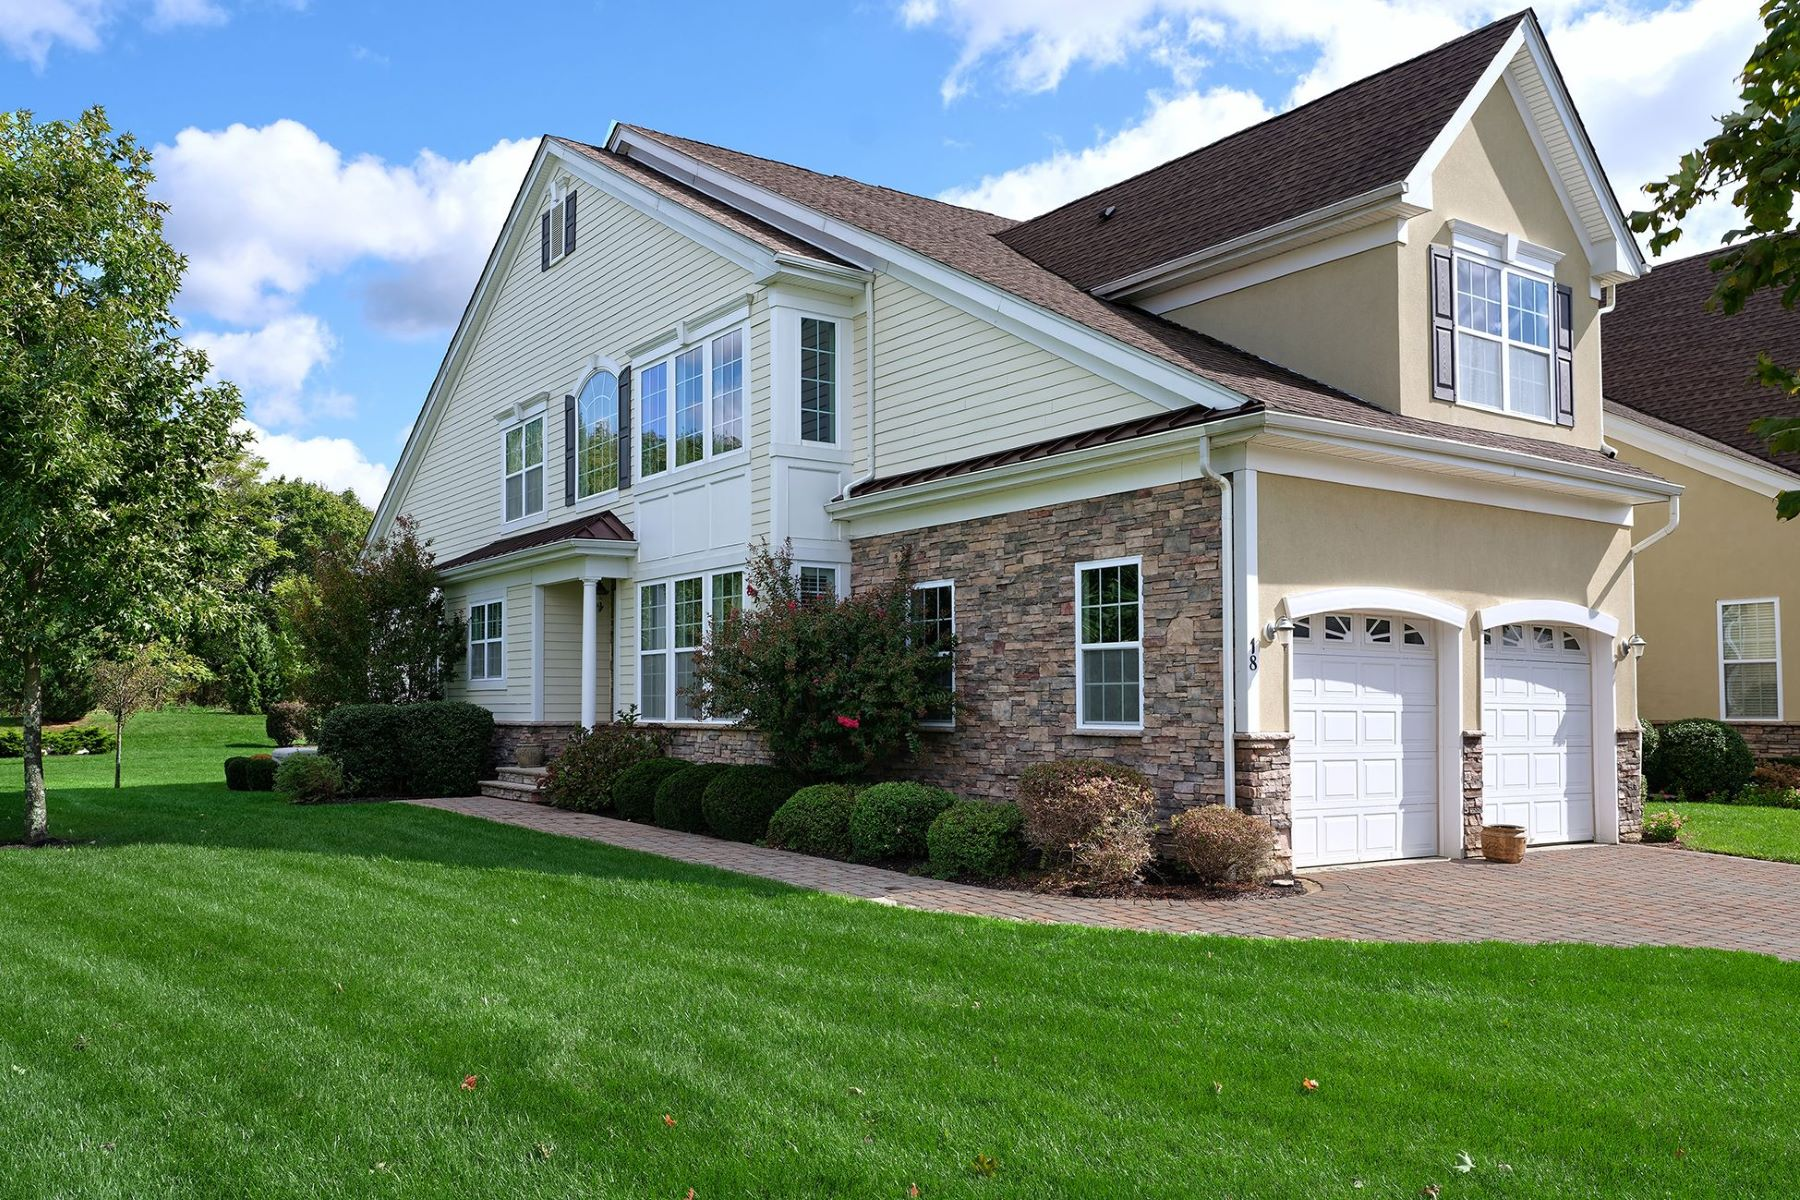 townhouses for Sale at Luxury Living in Greenbriar Falls 18 Aspen Lane, Tinton Falls, New Jersey 07724 United States